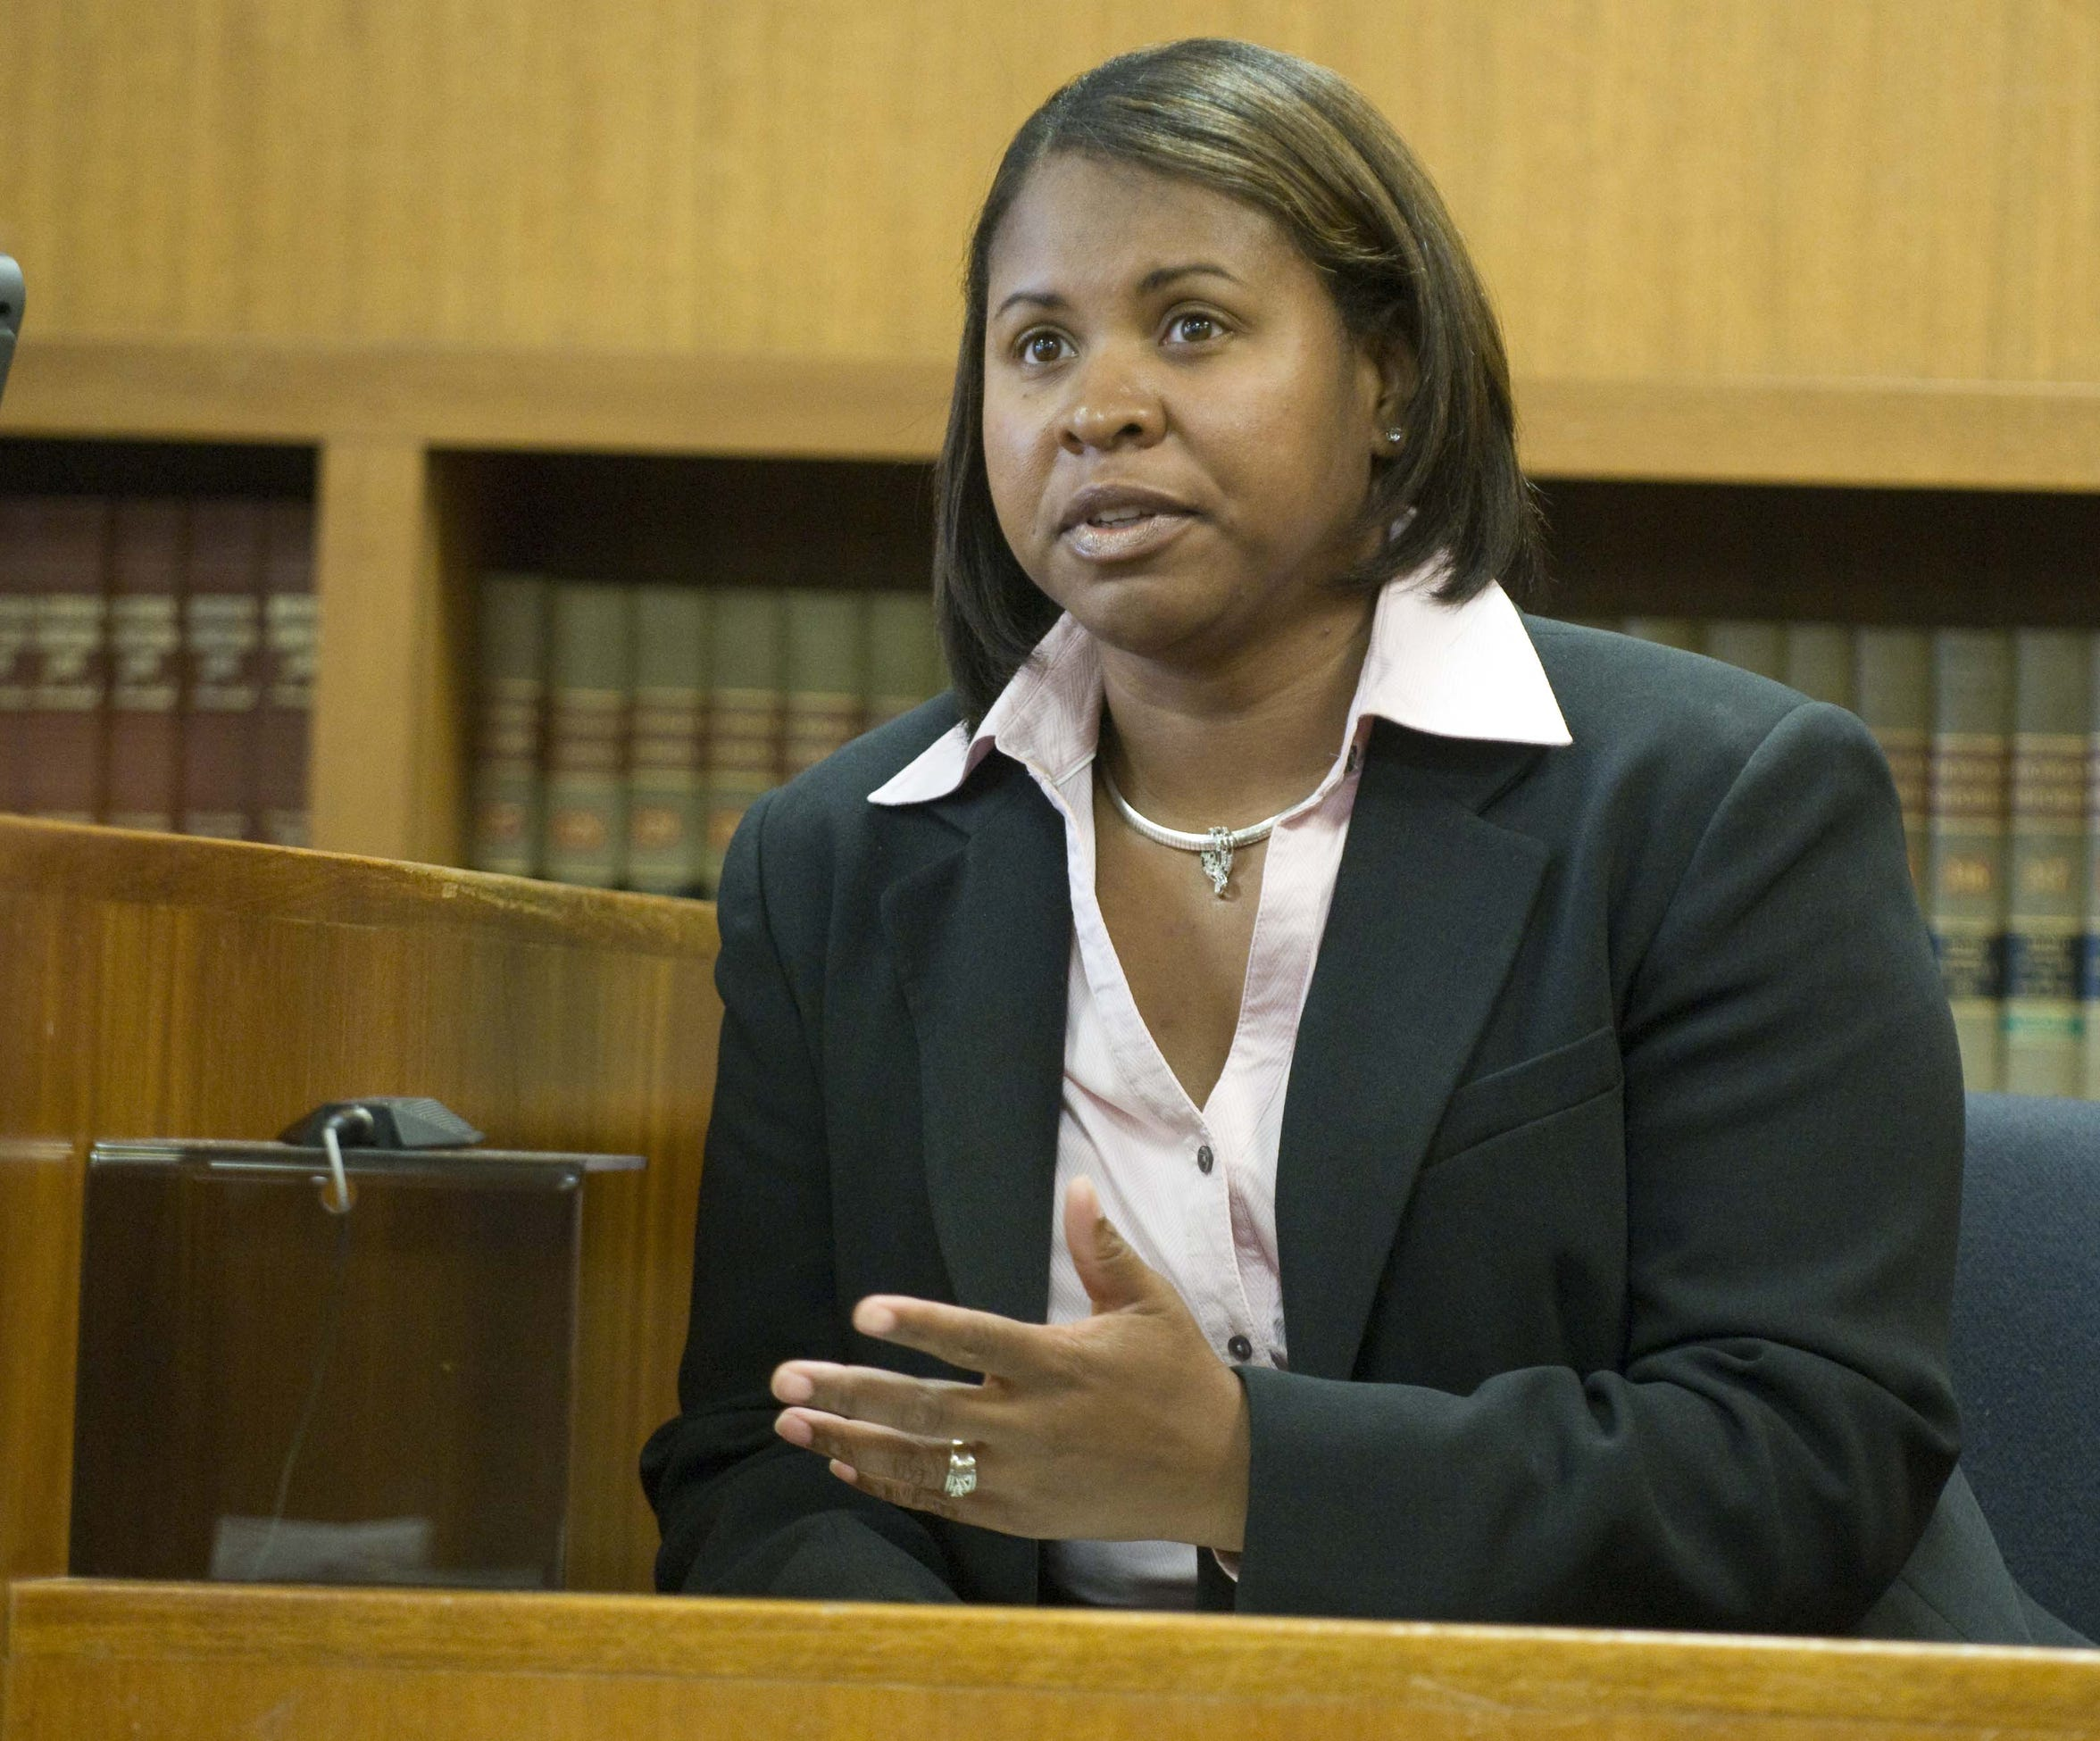 Sgt. Karen Brisby, then a detective, testifies in court in 2010. Brisby became a cadet in 1988, joining Port Huron's police department in 1991.